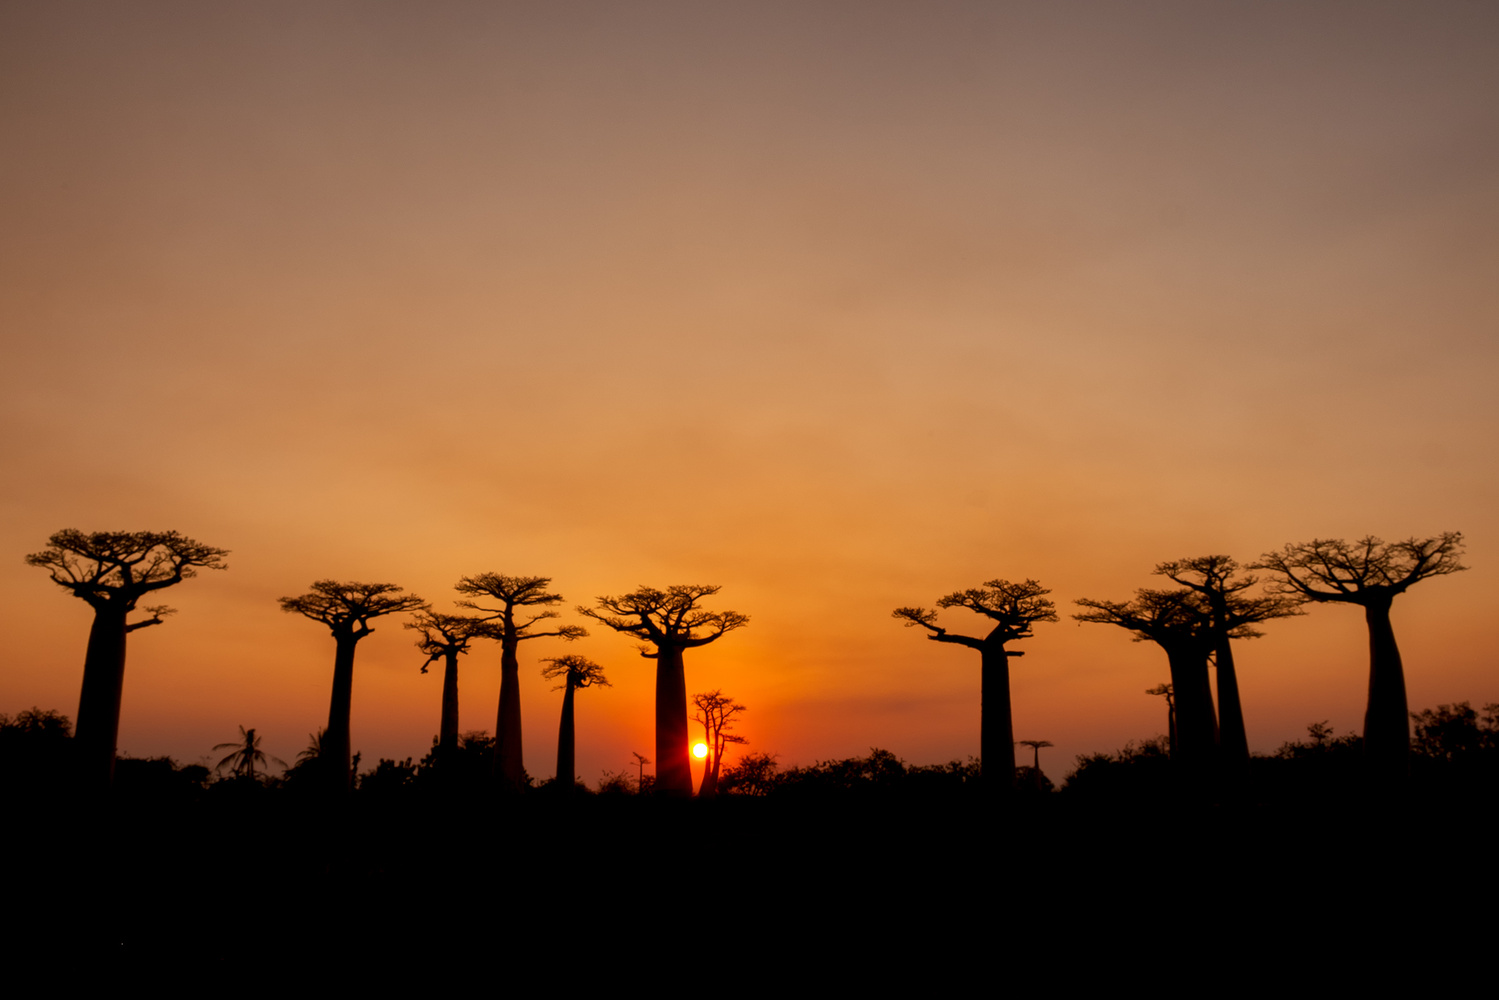 Baobab alley by Andrea Re Depaolini